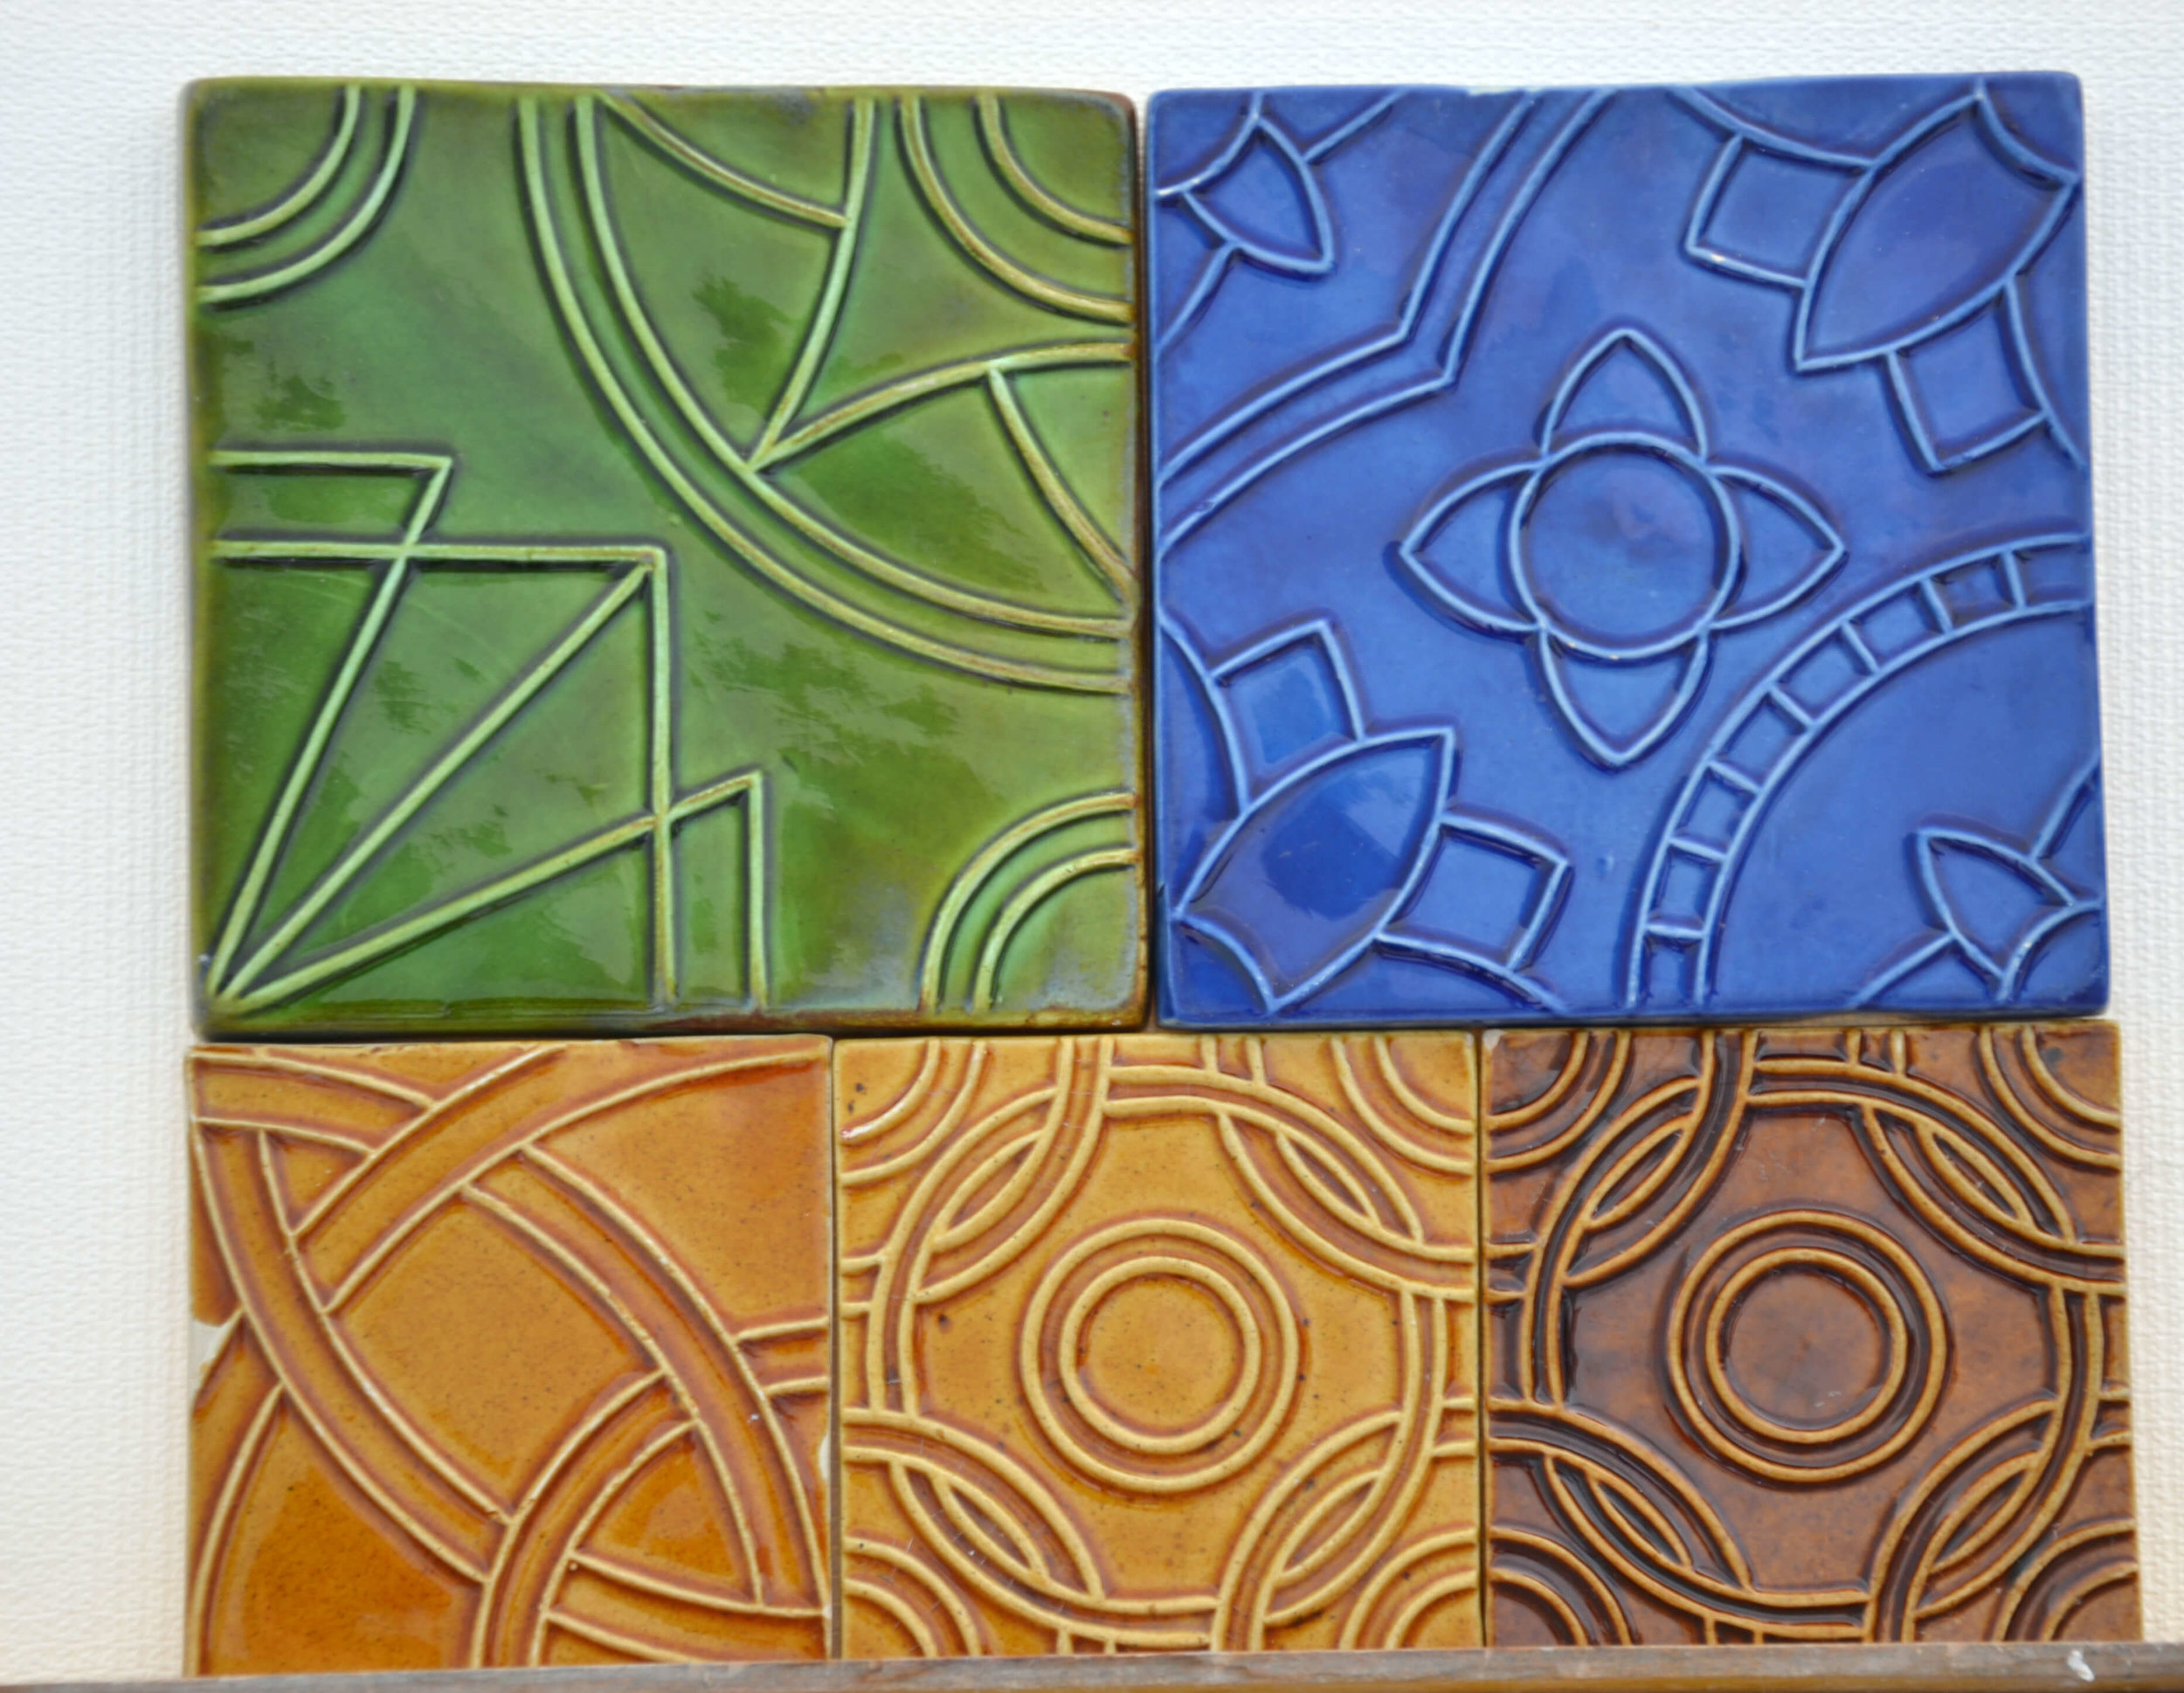 cerdeira-workshop-producao-azulejo3.JPG